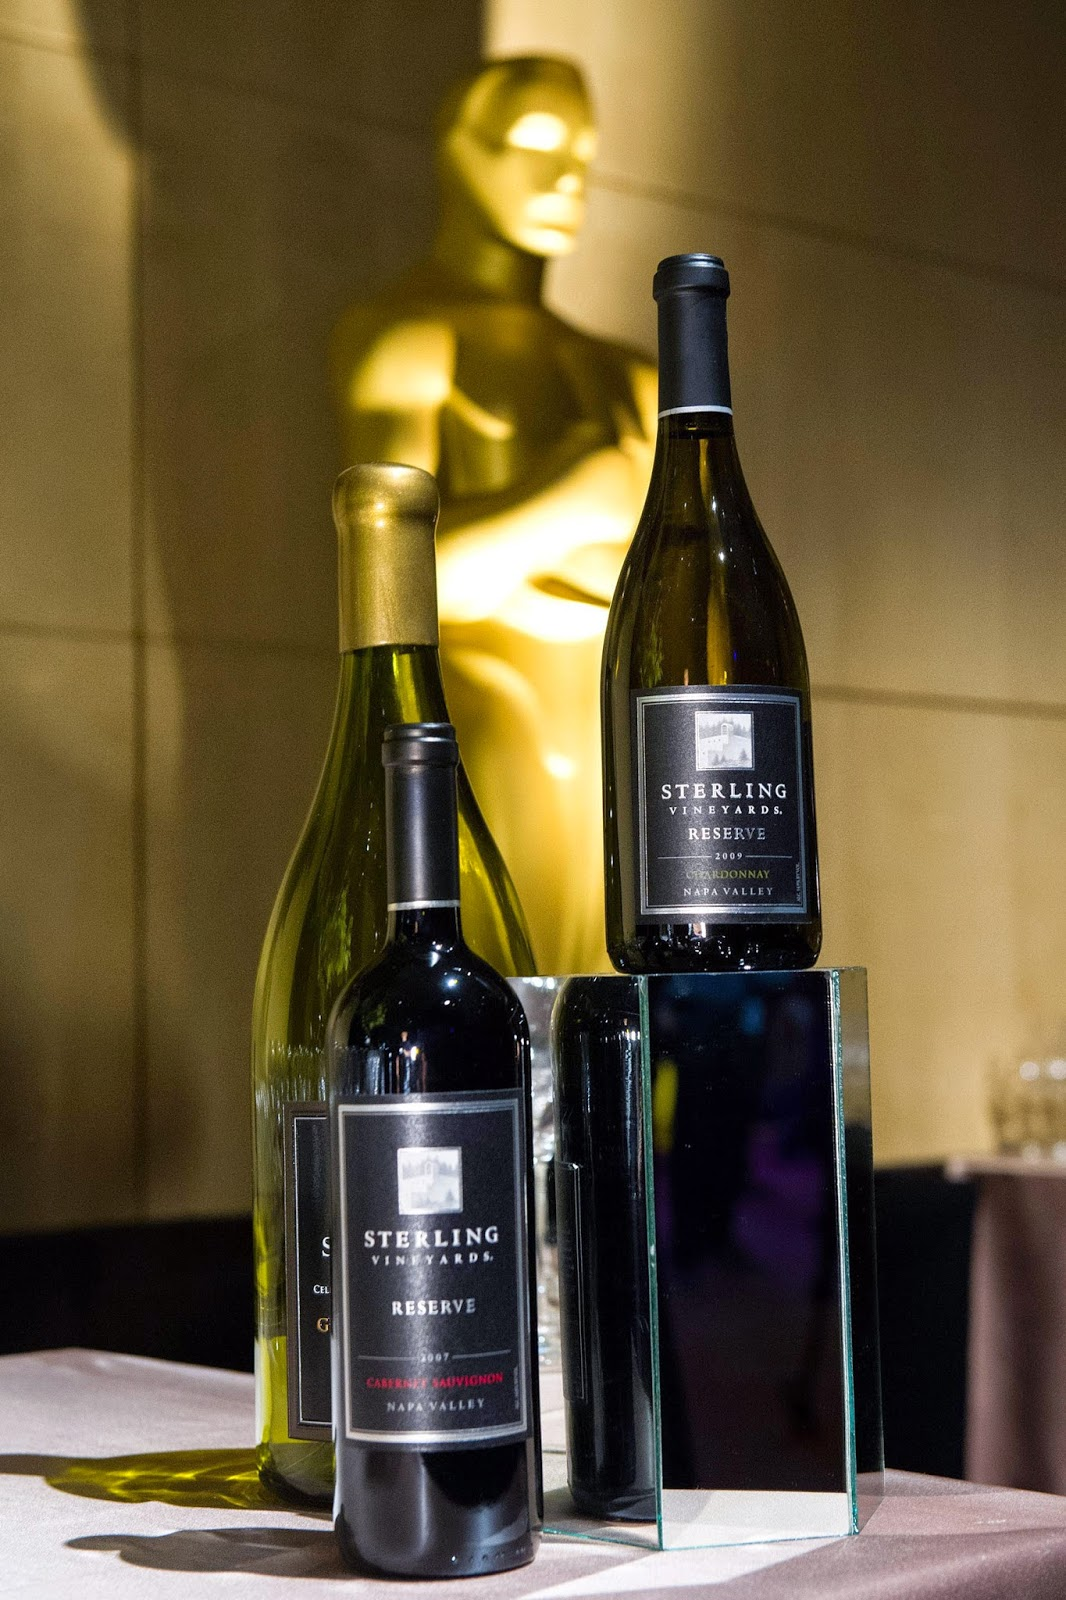 Vinos Sterling Vineyards Oscar 2015